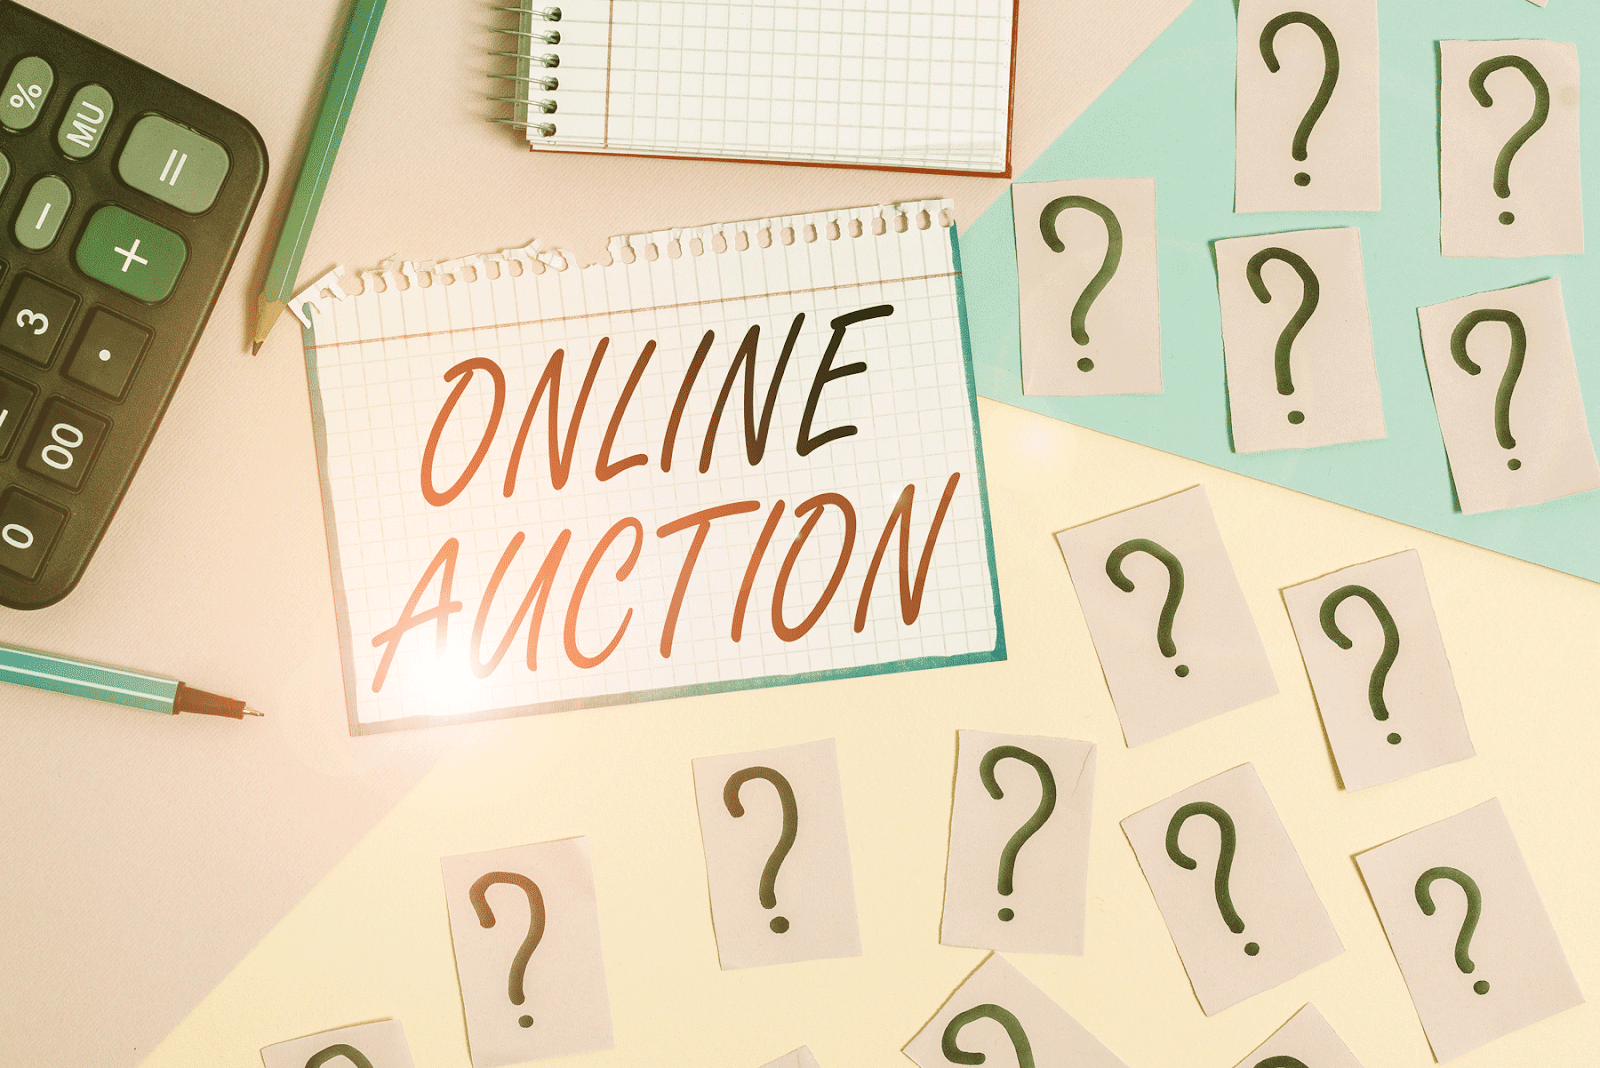 How to Get Started with Online Auctions